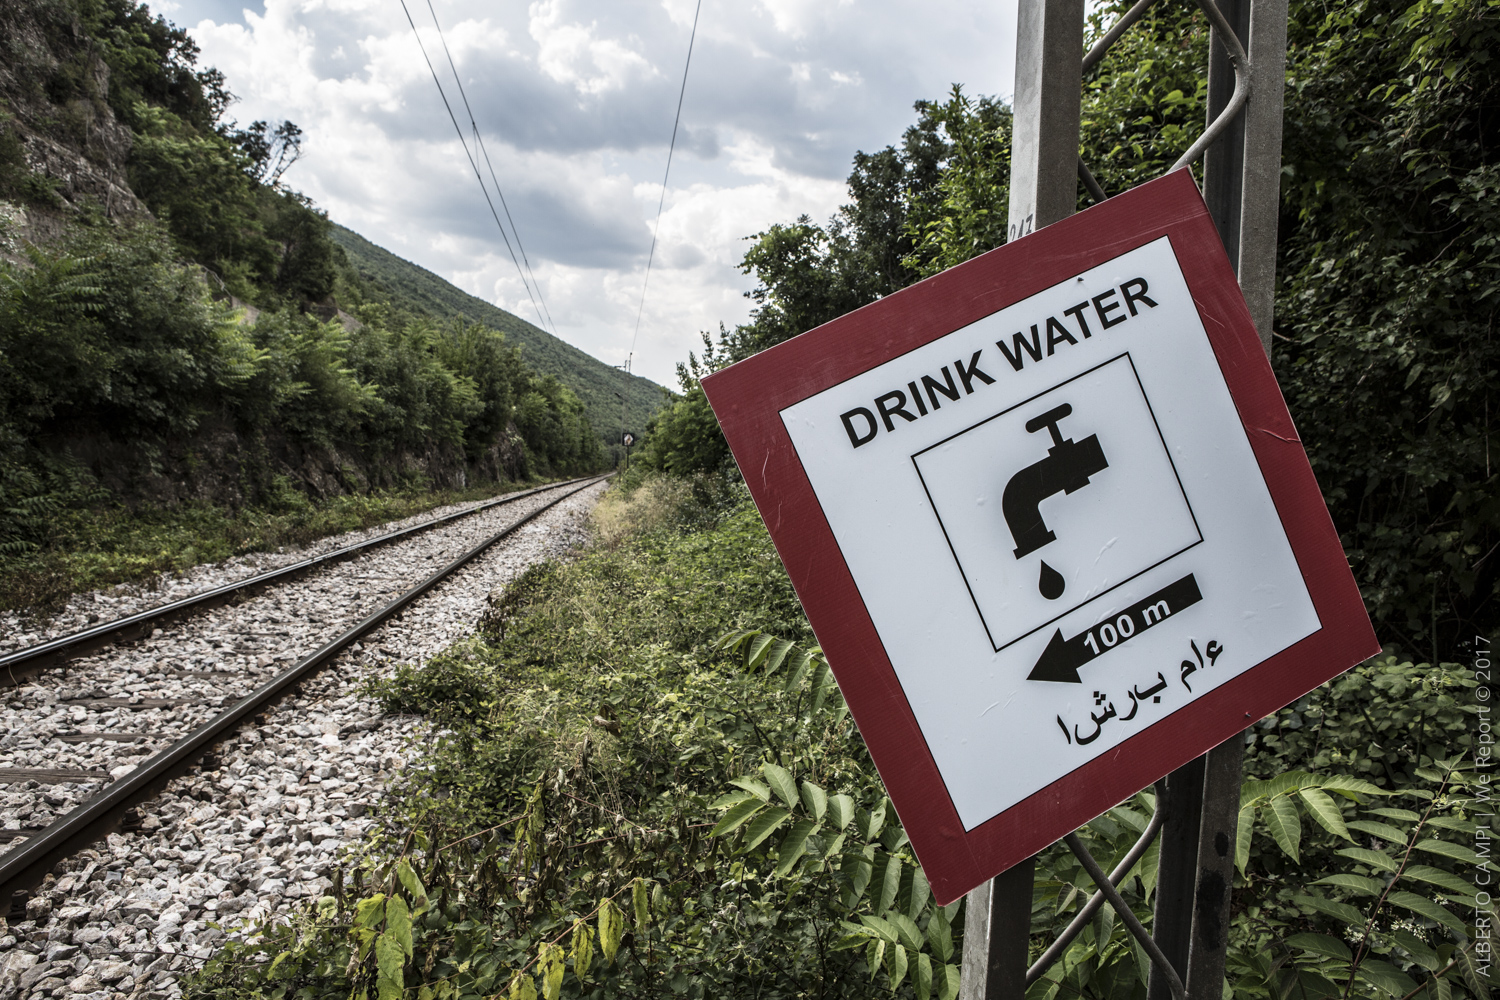 Example of sign on the railway. Udovo, FYROM (Republic of Macedonia). 2015